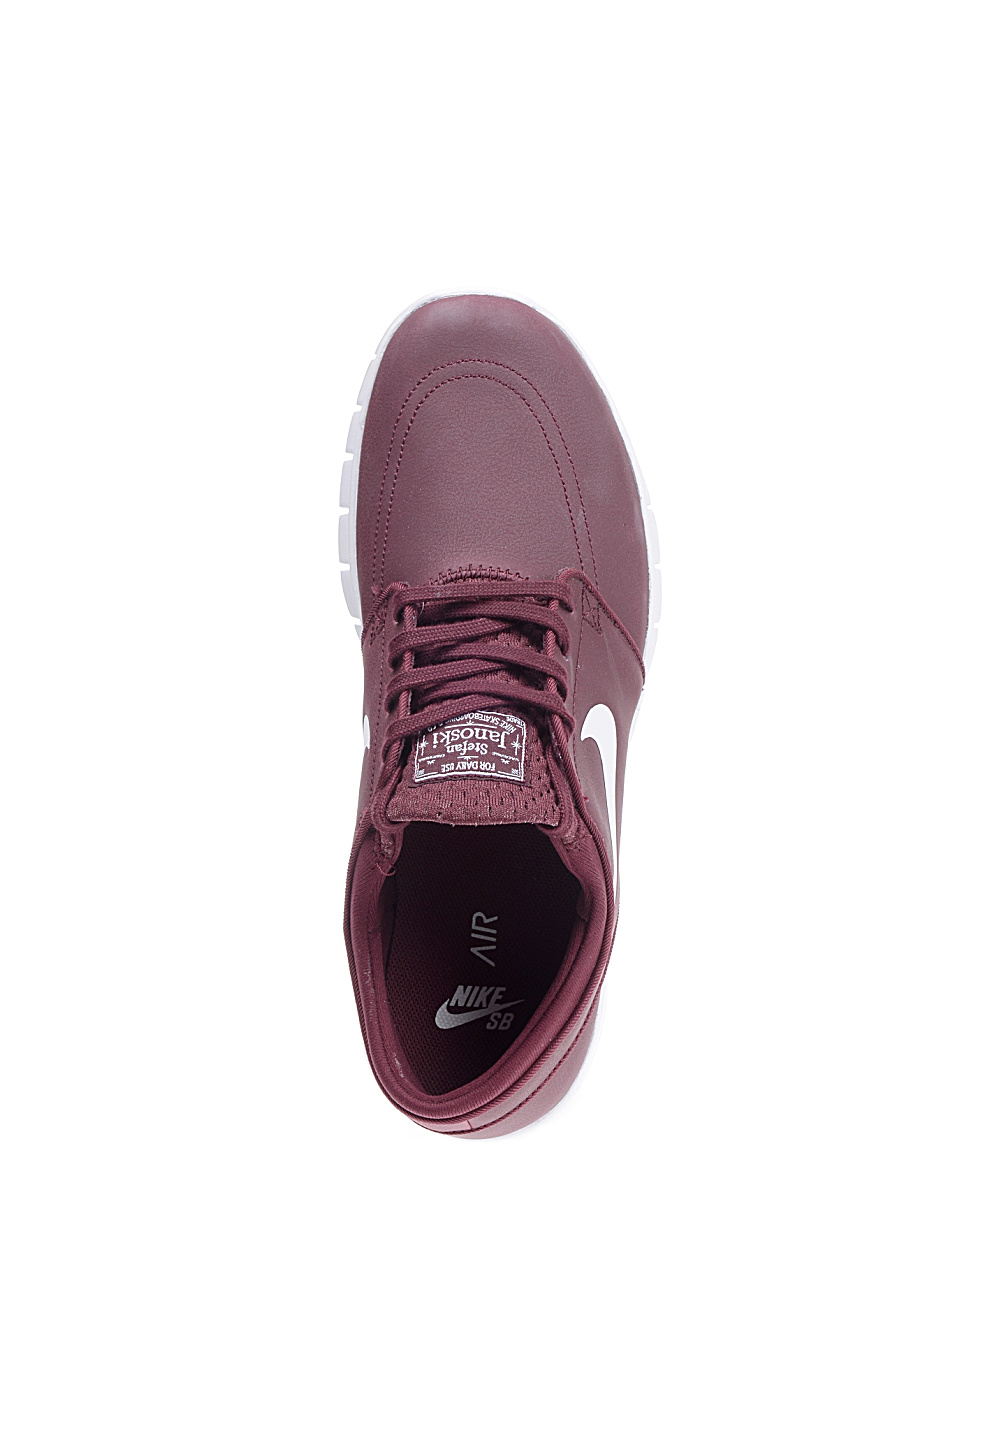 premium selection 90ed5 cfc61 Next. -40%. This product is currently out of stock. NIKE SB. Stefan Janoski  Max L - Sneakers for Men